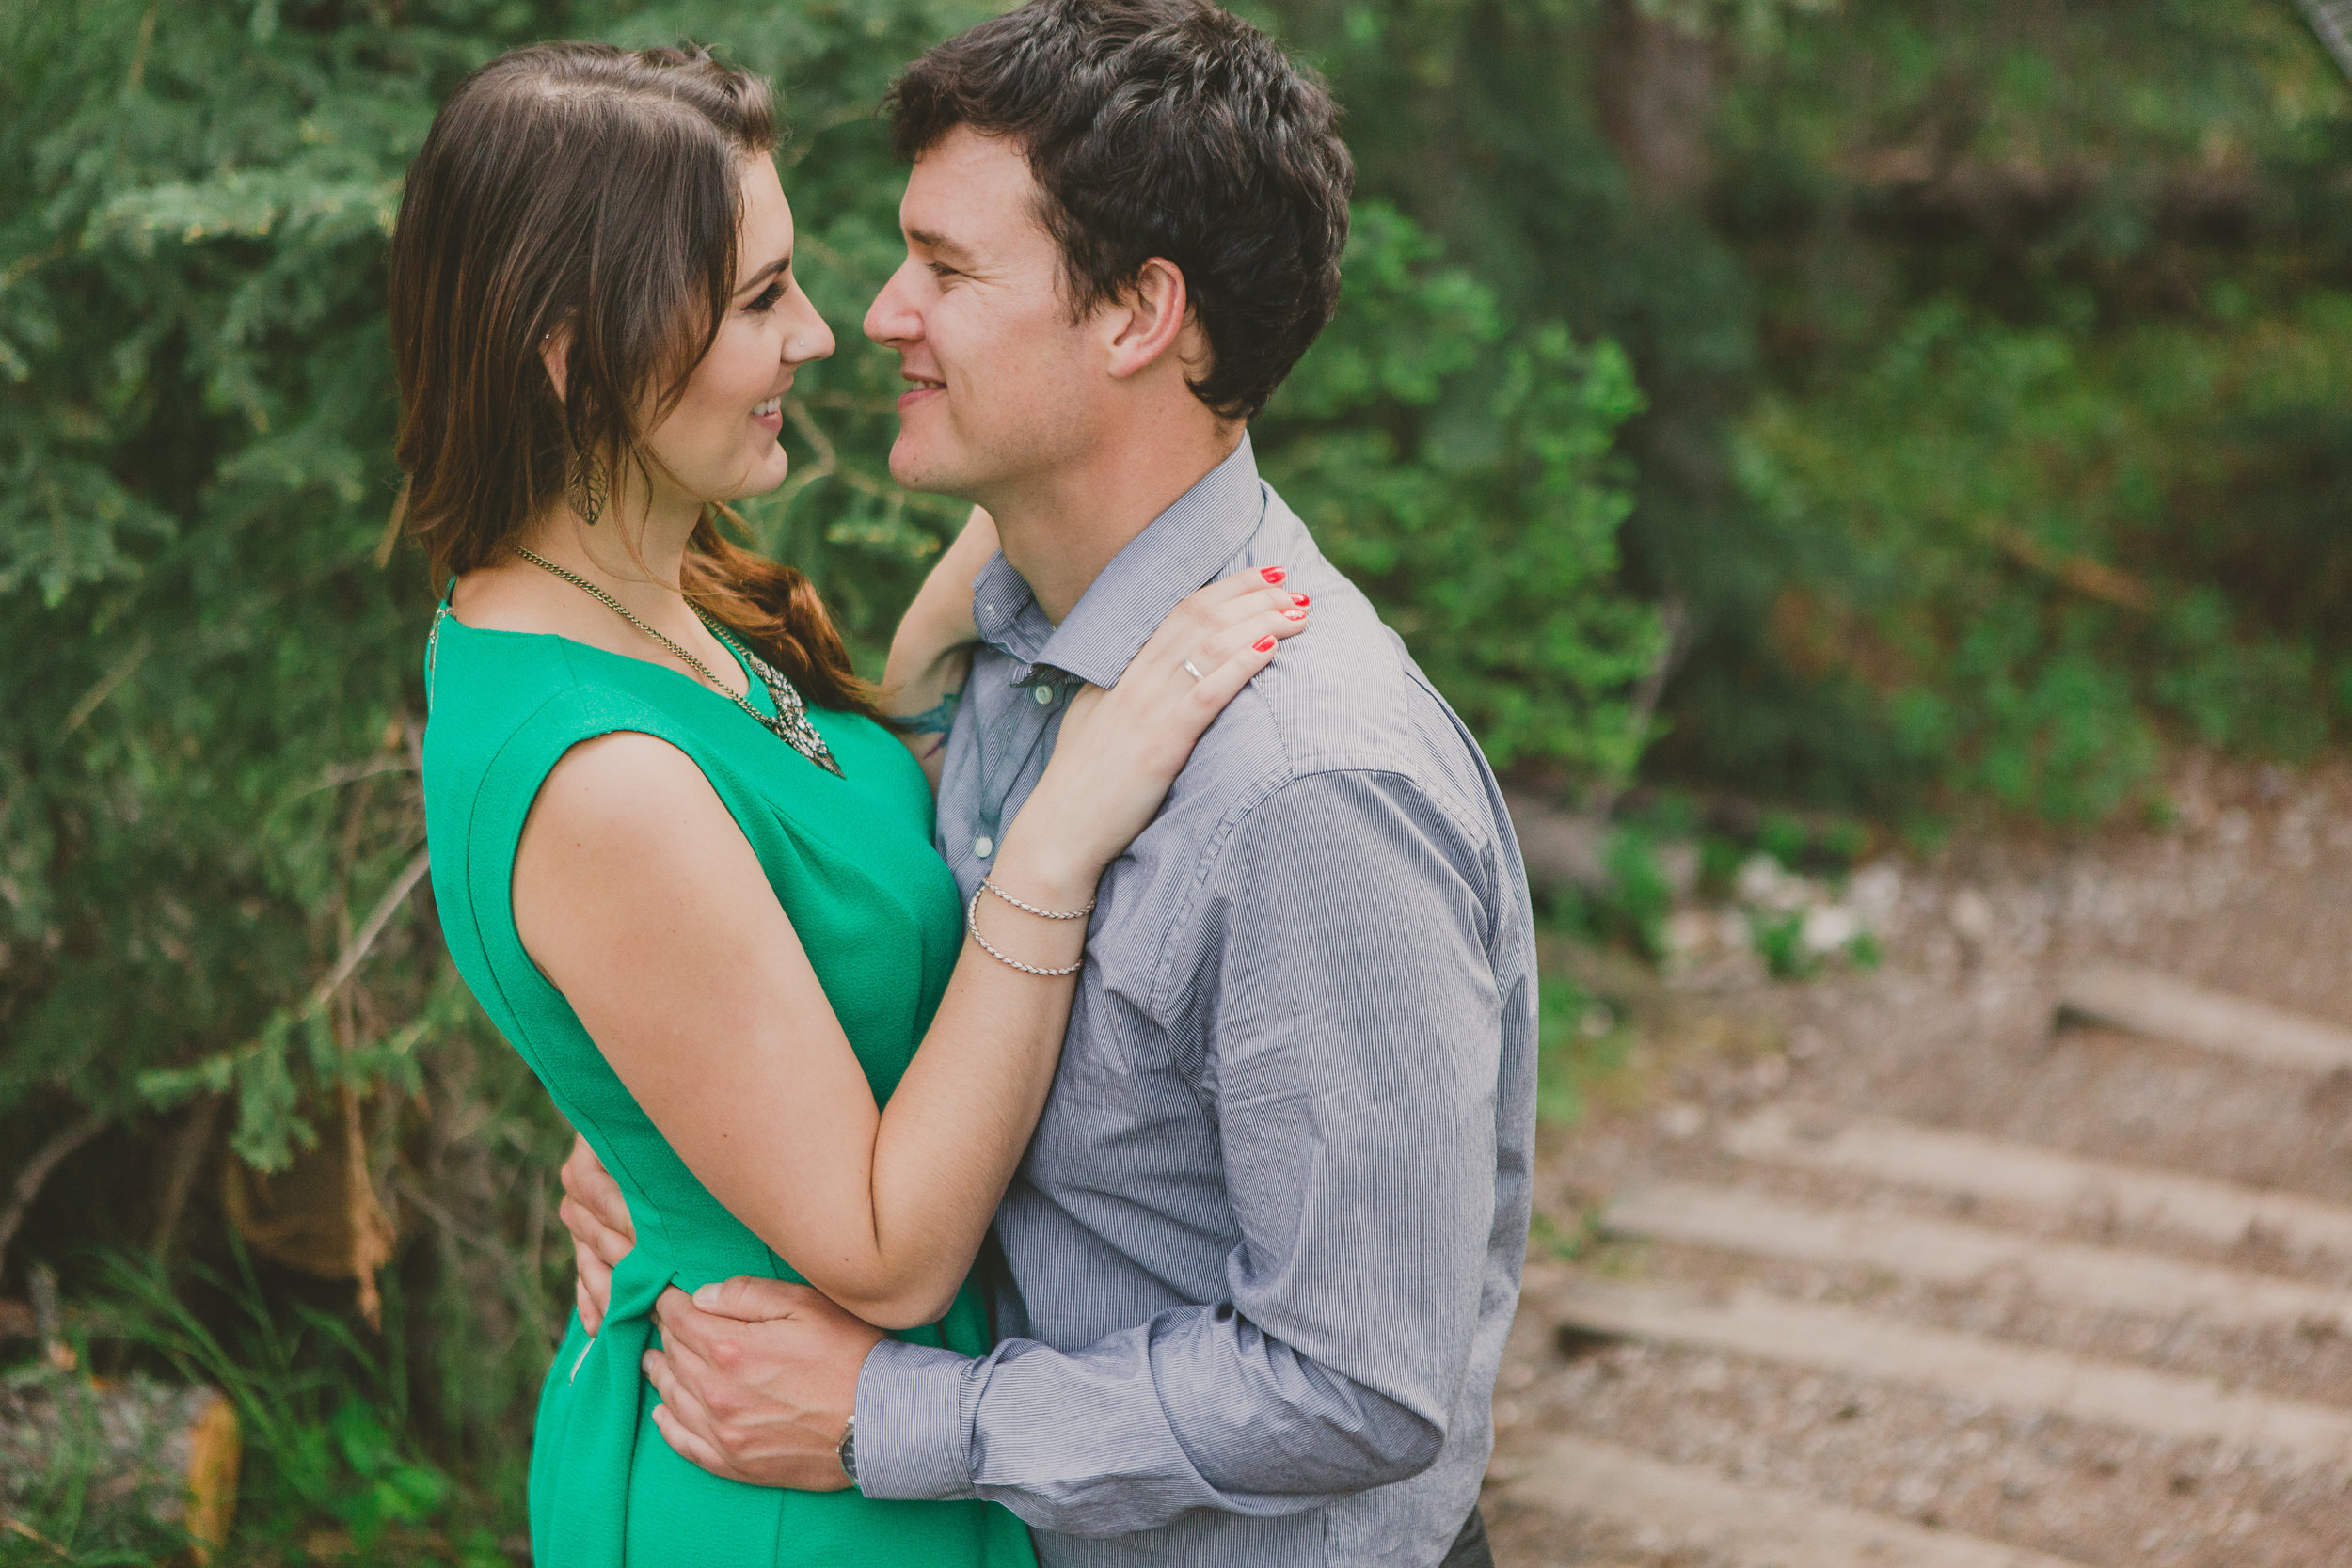 EngagementIza&Matthew (152 of 211).jpg